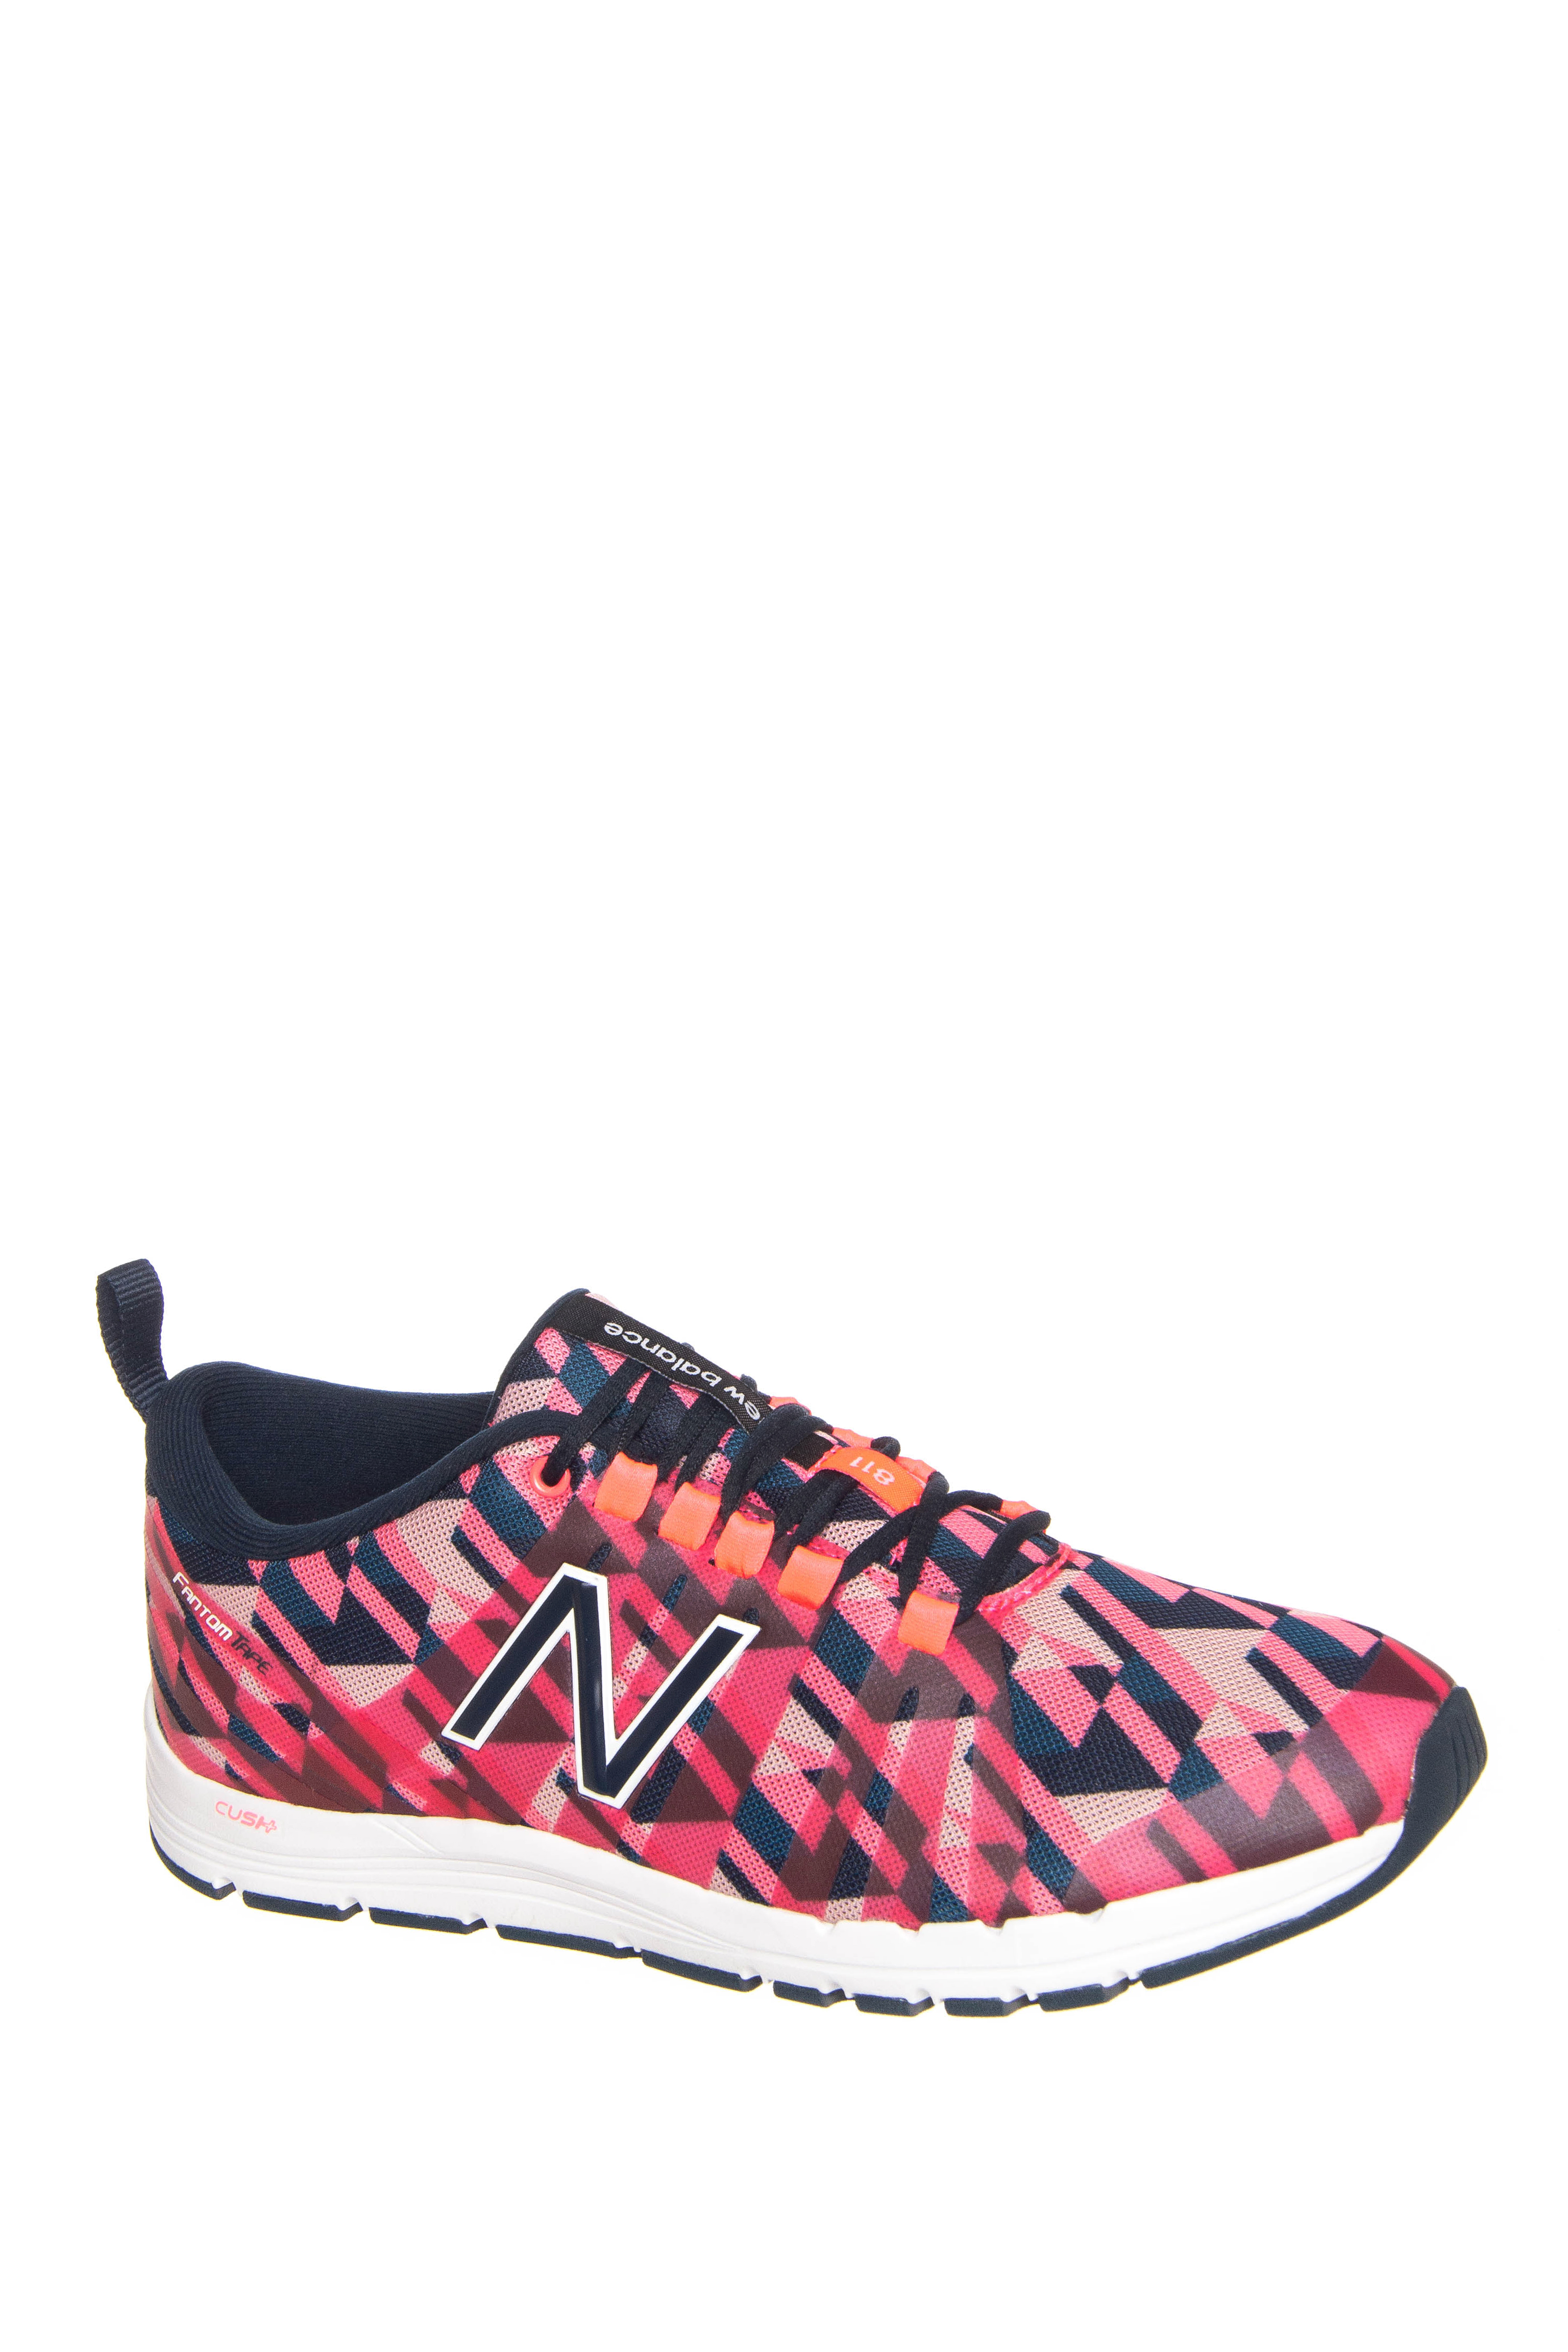 New Balance 811 Print Trainer Low Top Sneakers - Guava